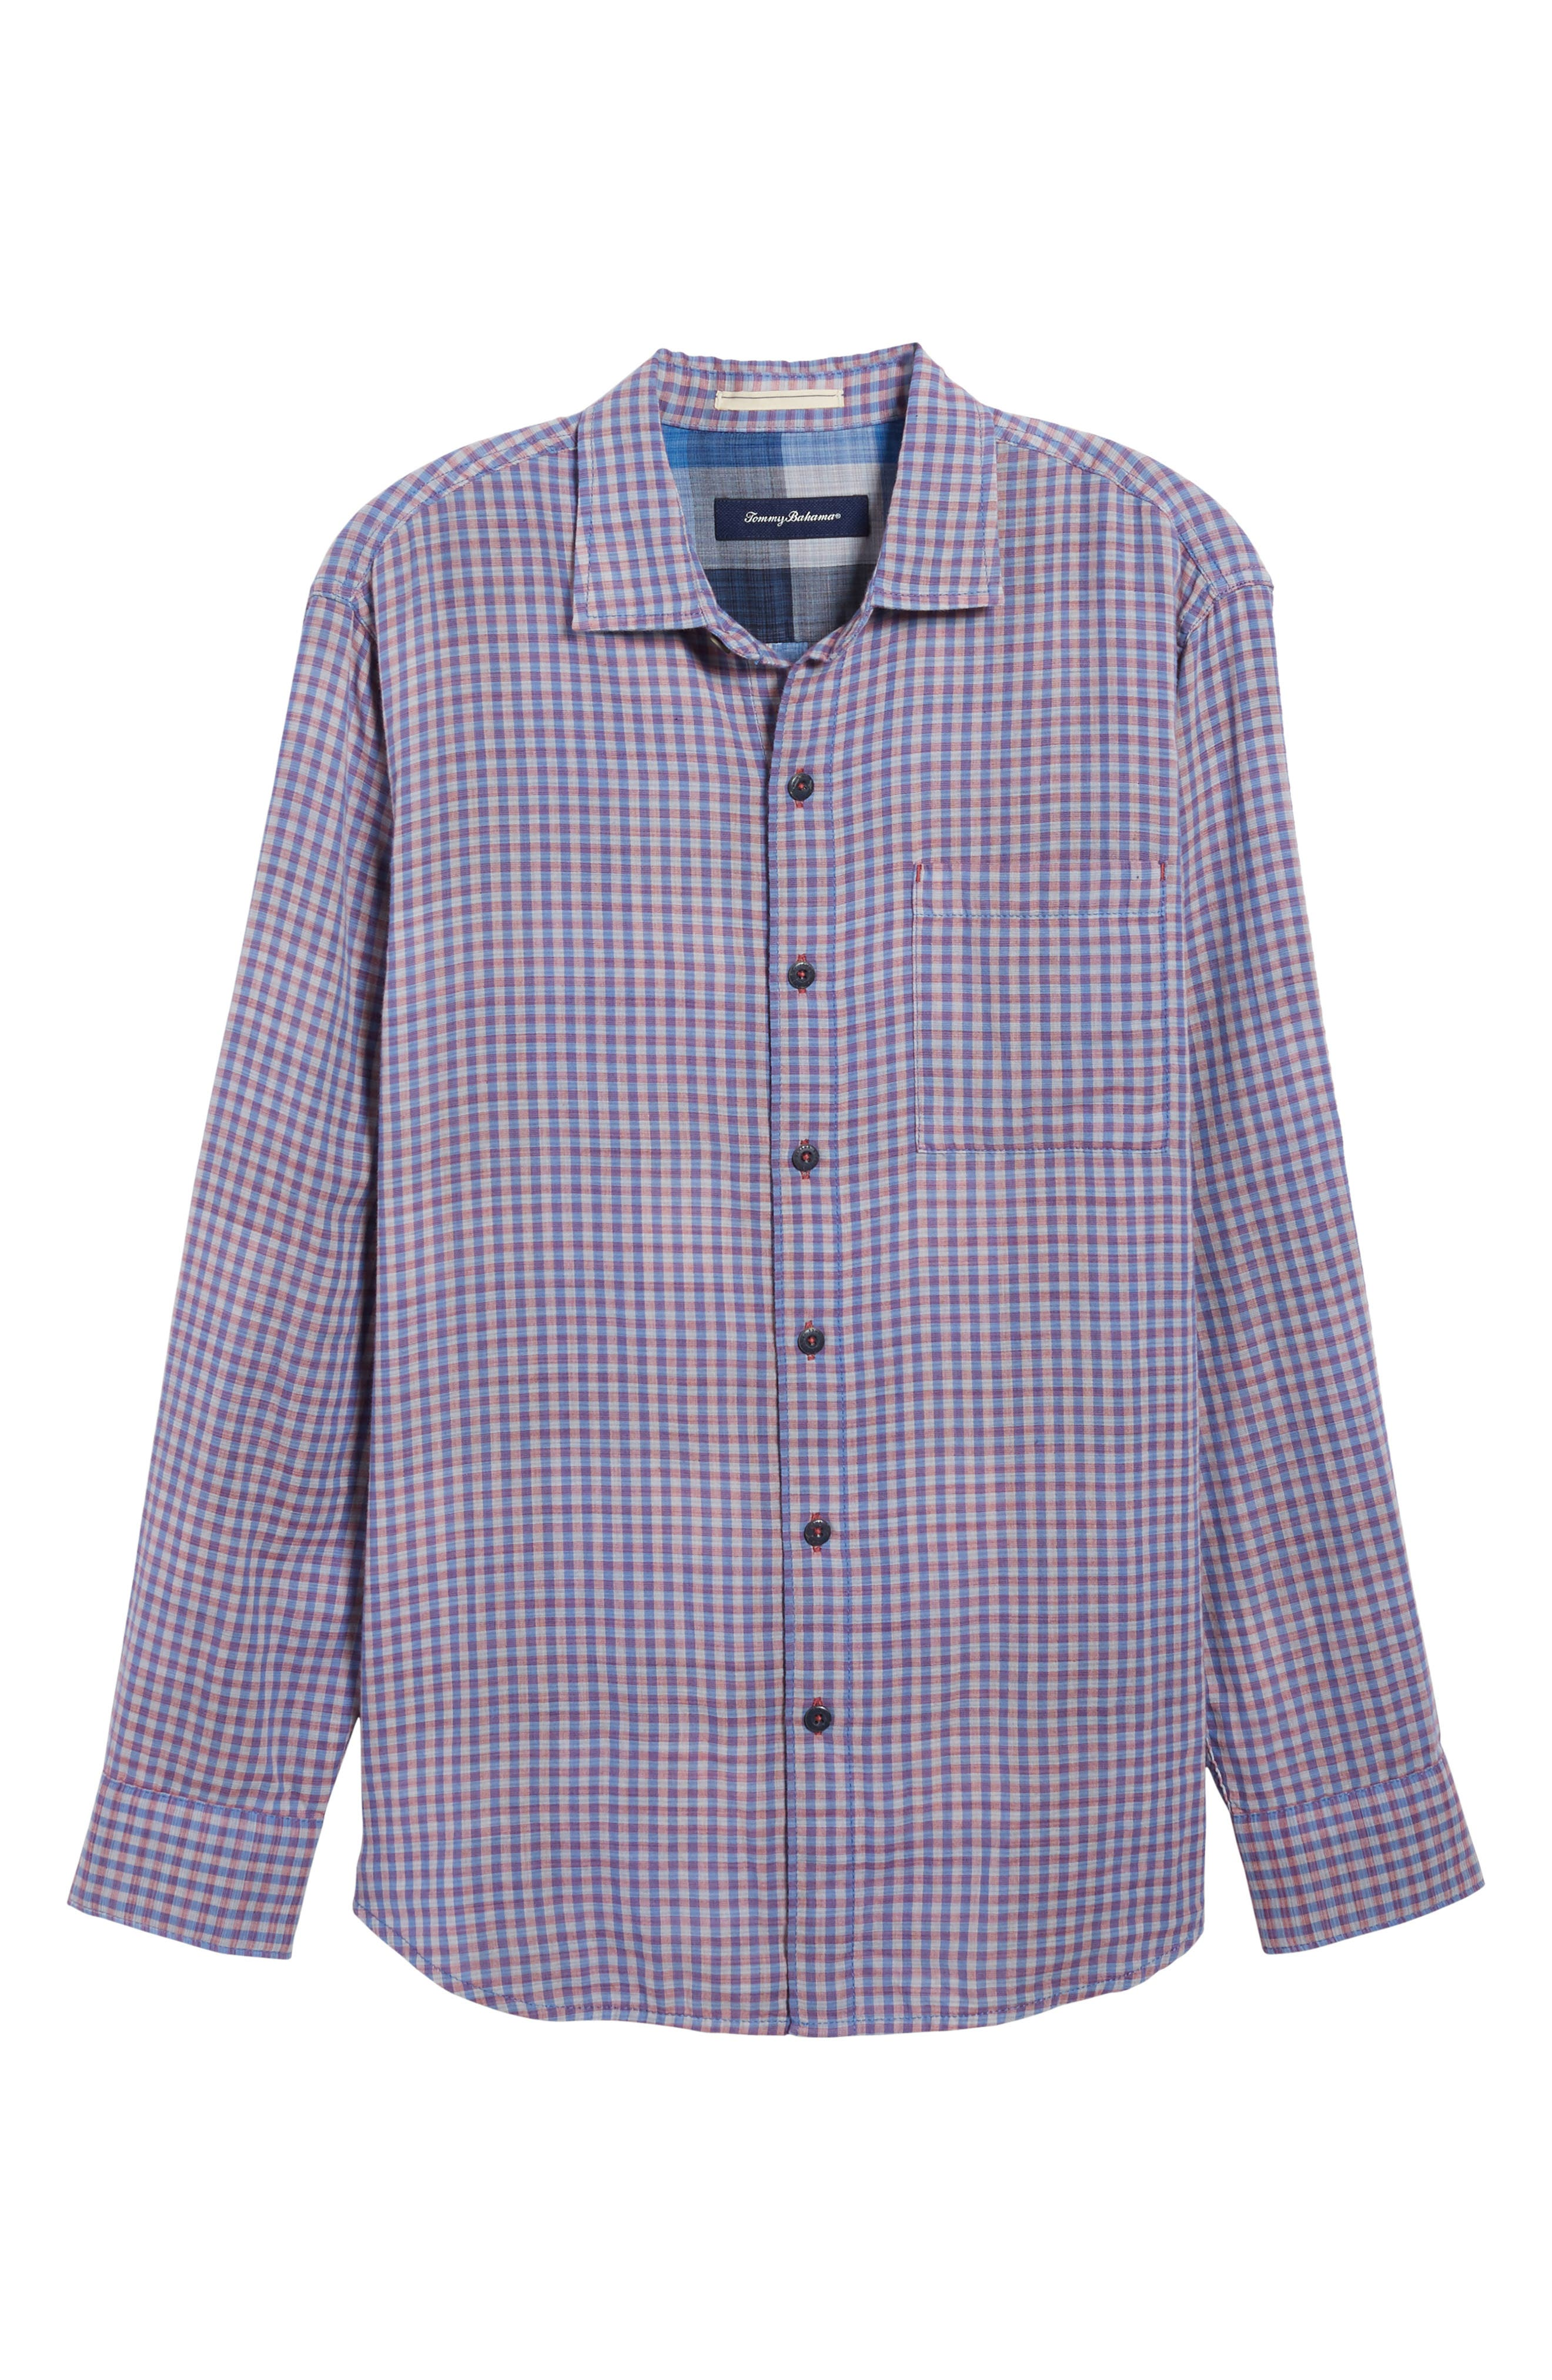 Dual Lux Gingham Sport Shirt,                             Alternate thumbnail 6, color,